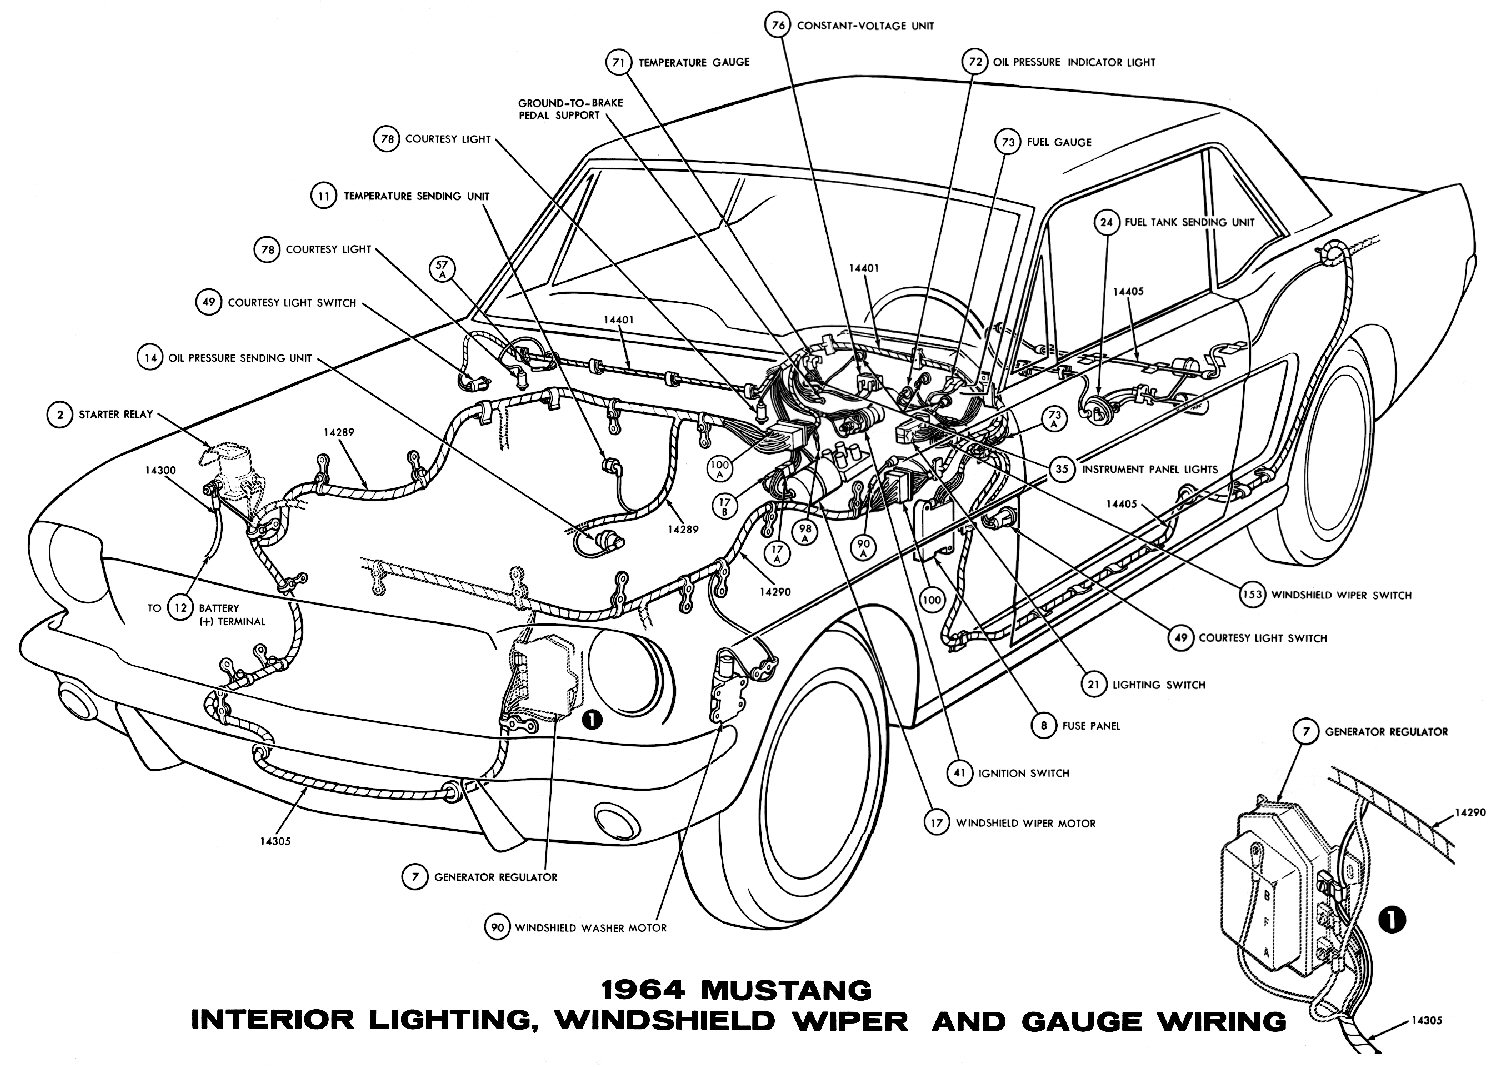 24 Volt Voltage Regulator Wiring Diagram 1964 Mustang Diagrams Average Joe Restoration Sm1964j